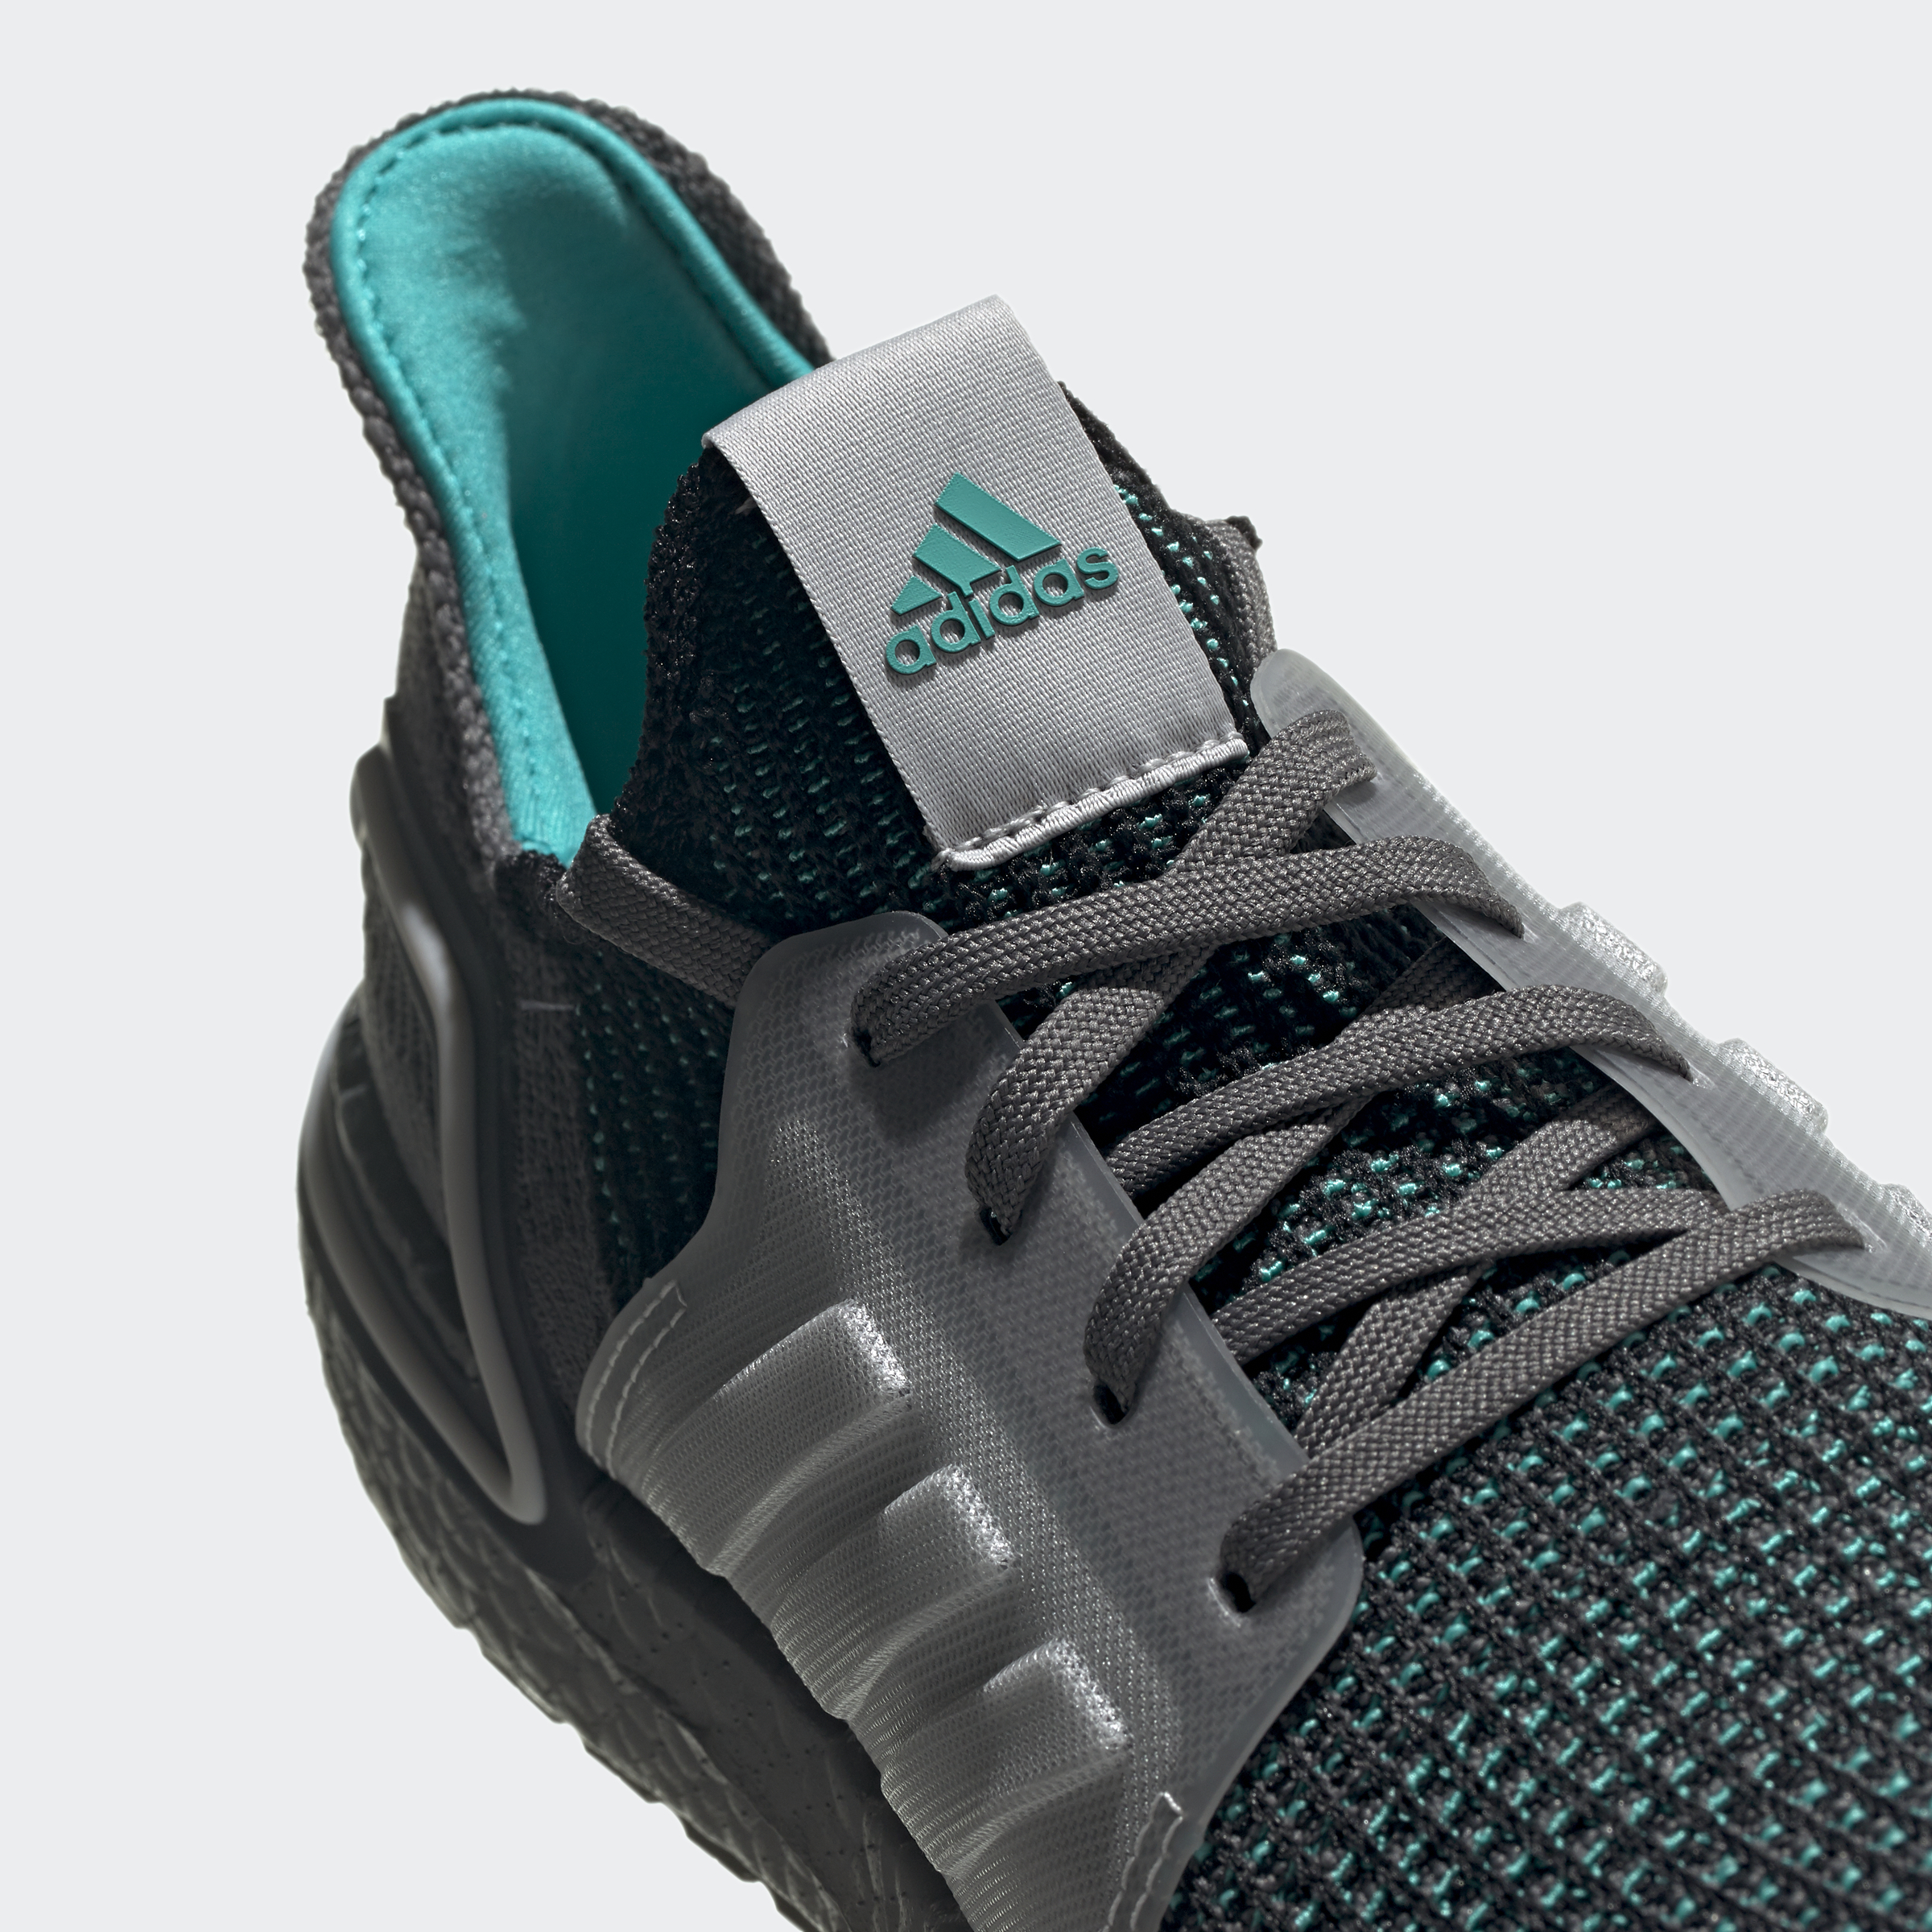 adidas-Ultraboost-19-Shoes-Athletic-amp-Sneakers thumbnail 18